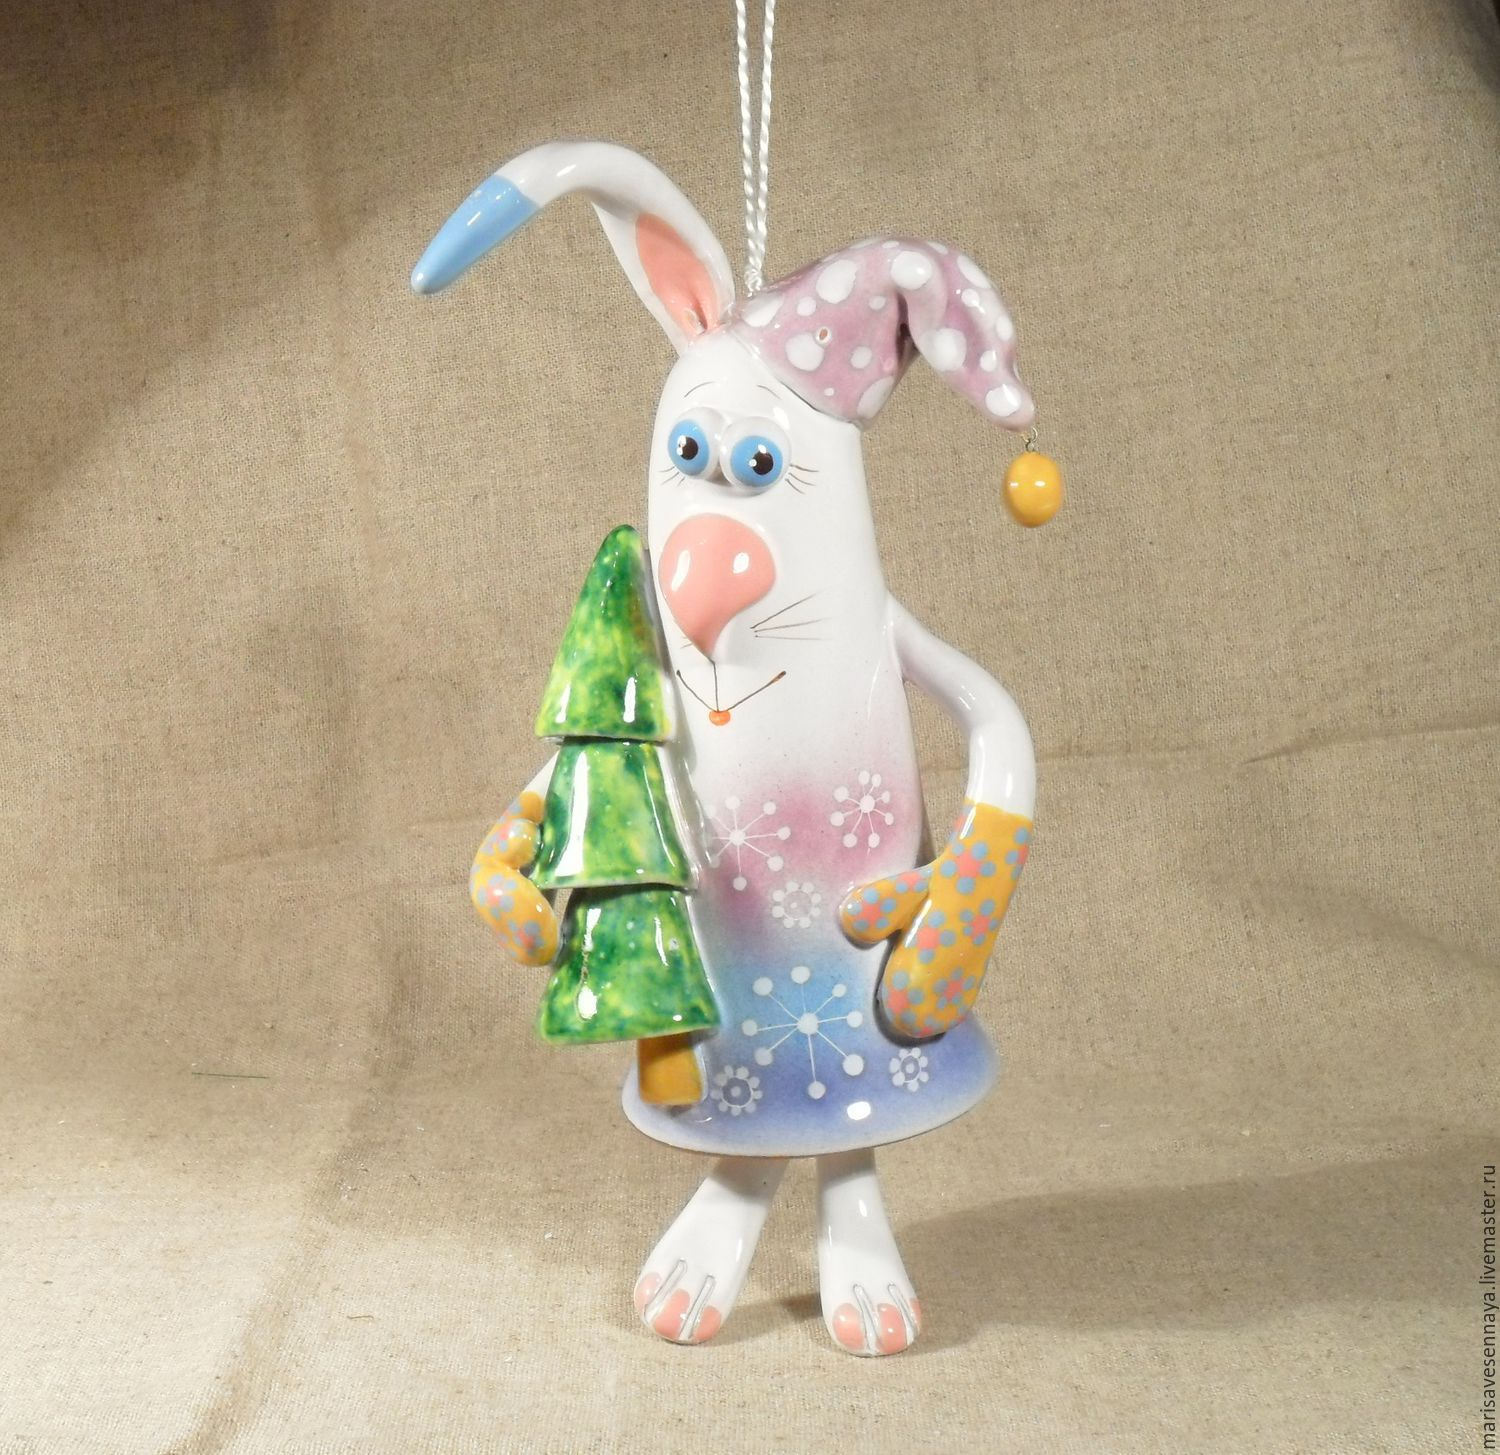 Ceramic Bunny Bell With Christmas Tree Shop Online On Livemaster